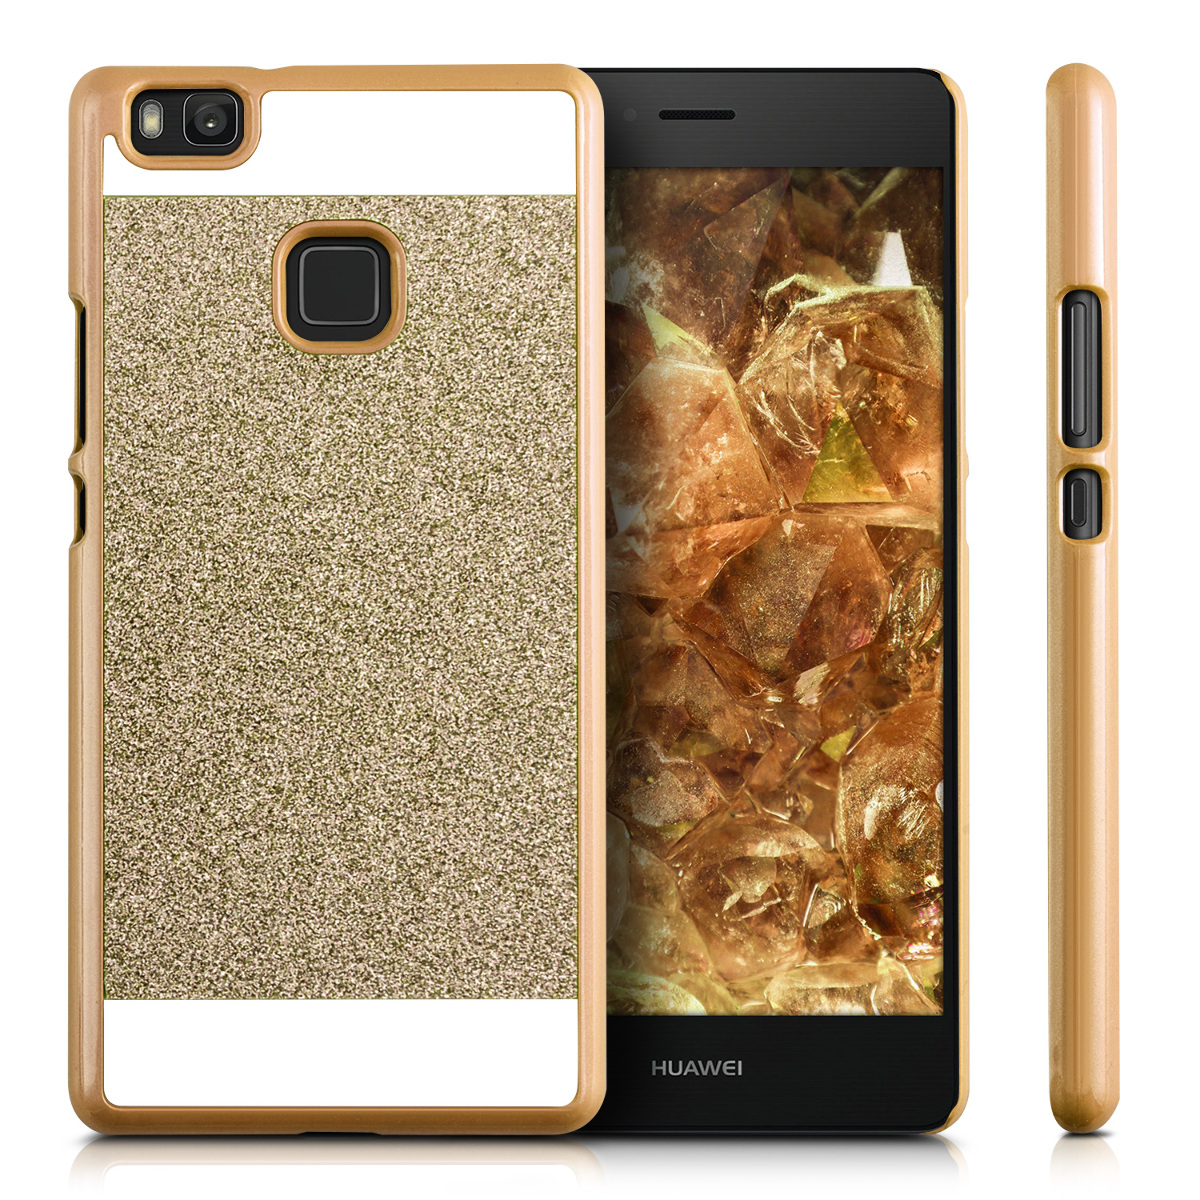 HARD-COVER-FOR-HUAWEI-P9-LITE-CASE-BACK-SHELL-BUMPER-MOBILE-PHONE-PROTECTIVE